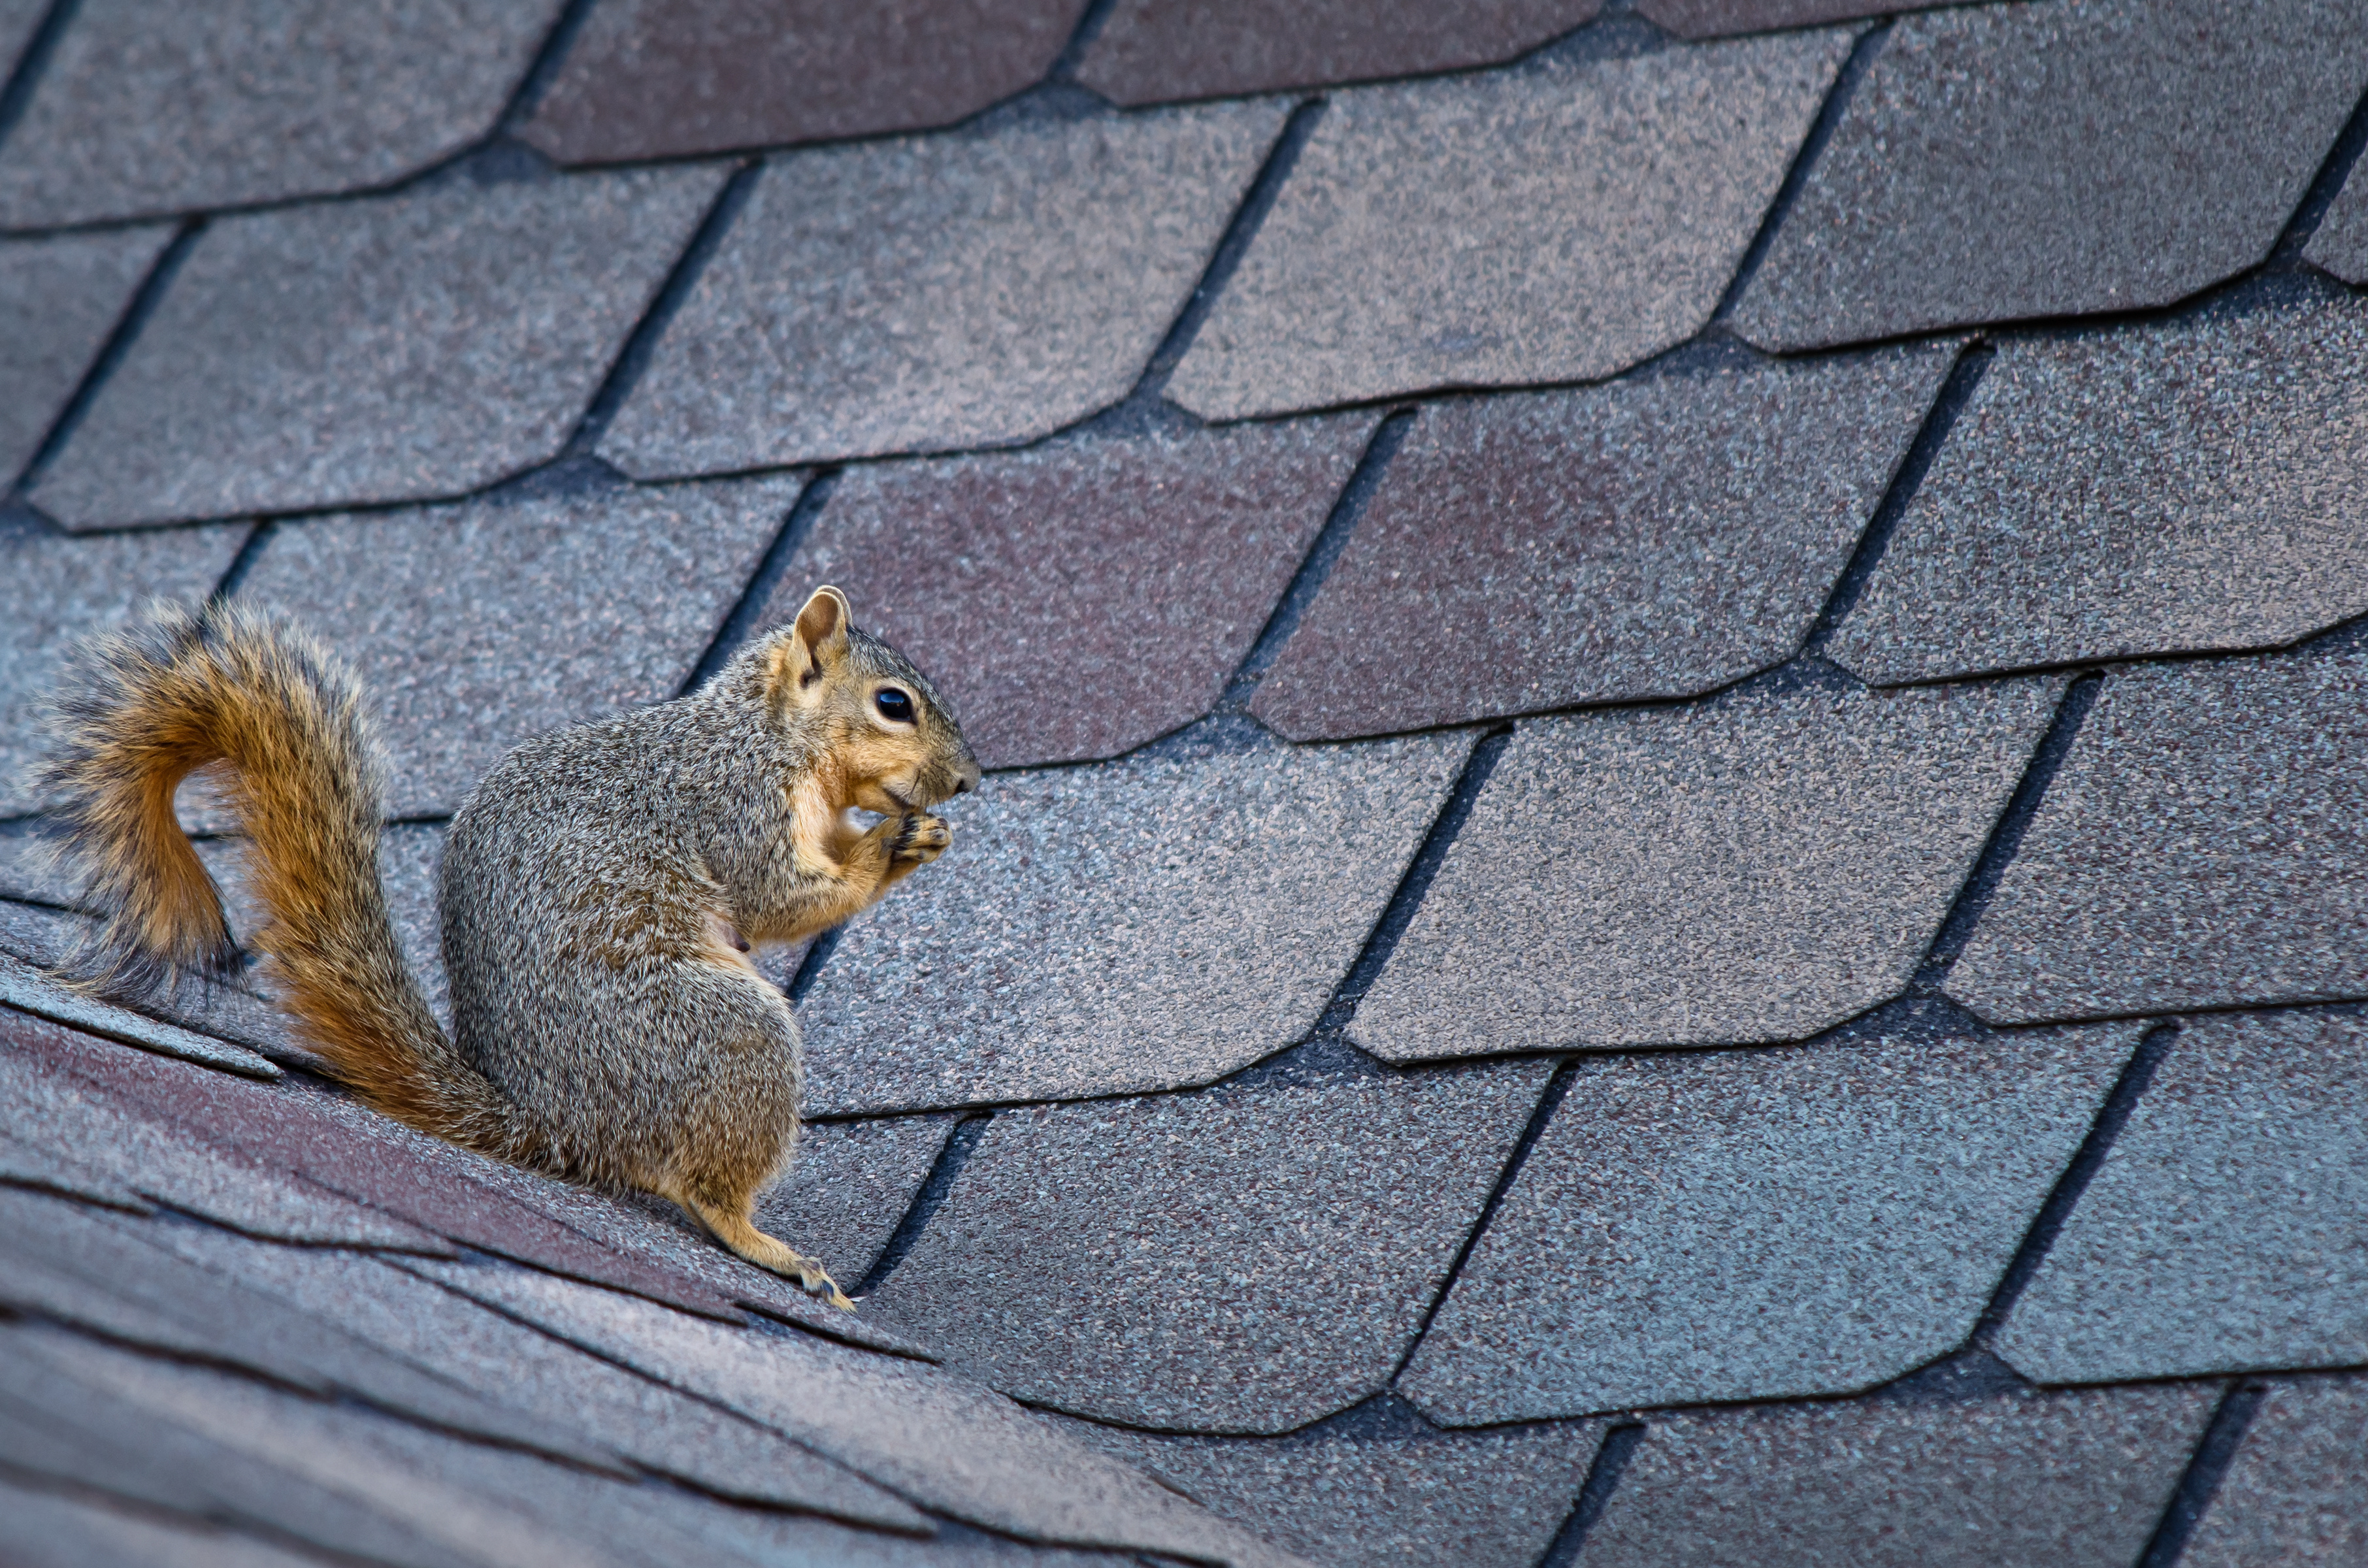 Squirrel sitting on the roof